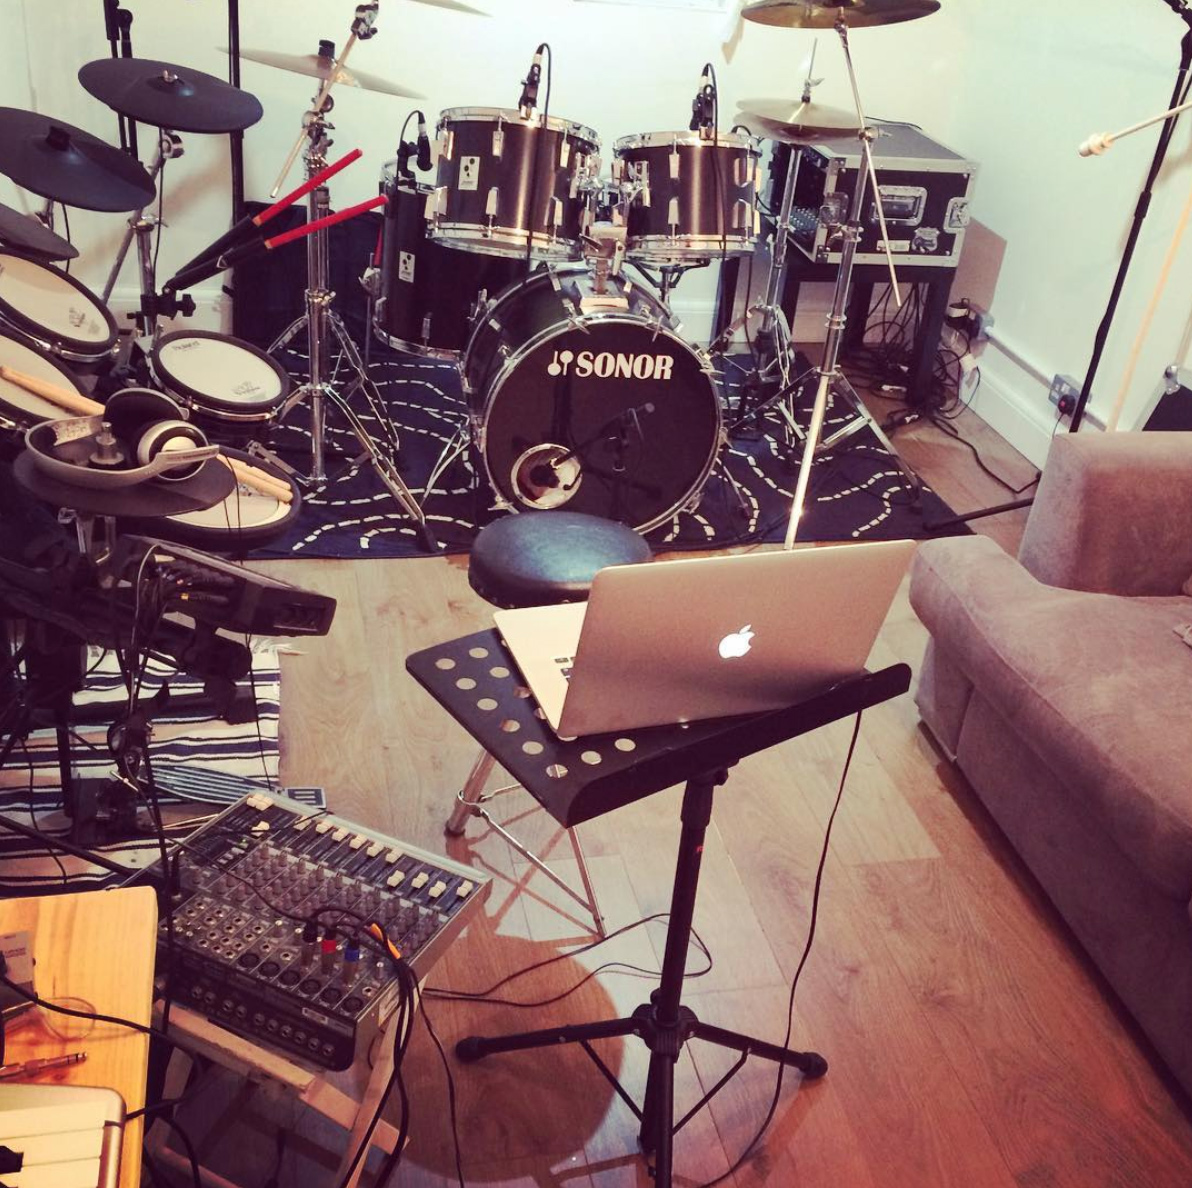 COME AND RECORD! - I also record bands and artists in my purpose built and soundproof home studio. Great for pre-production and low cost demos and recordings.